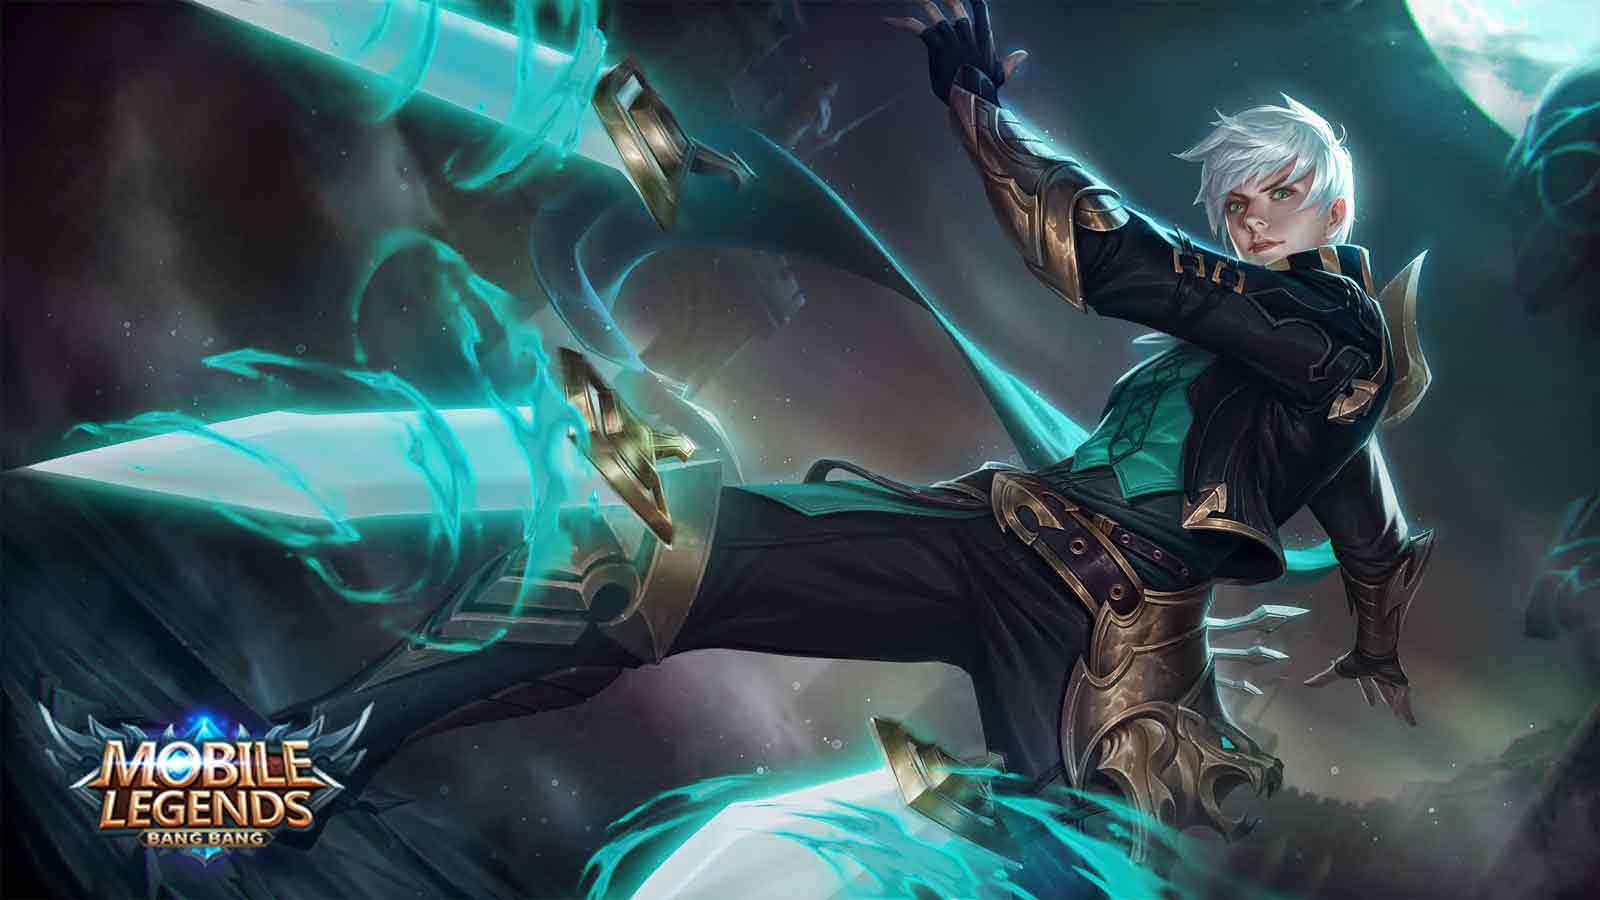 Hero Gossen Gusion Wallpapers 2020 Mobile Legends